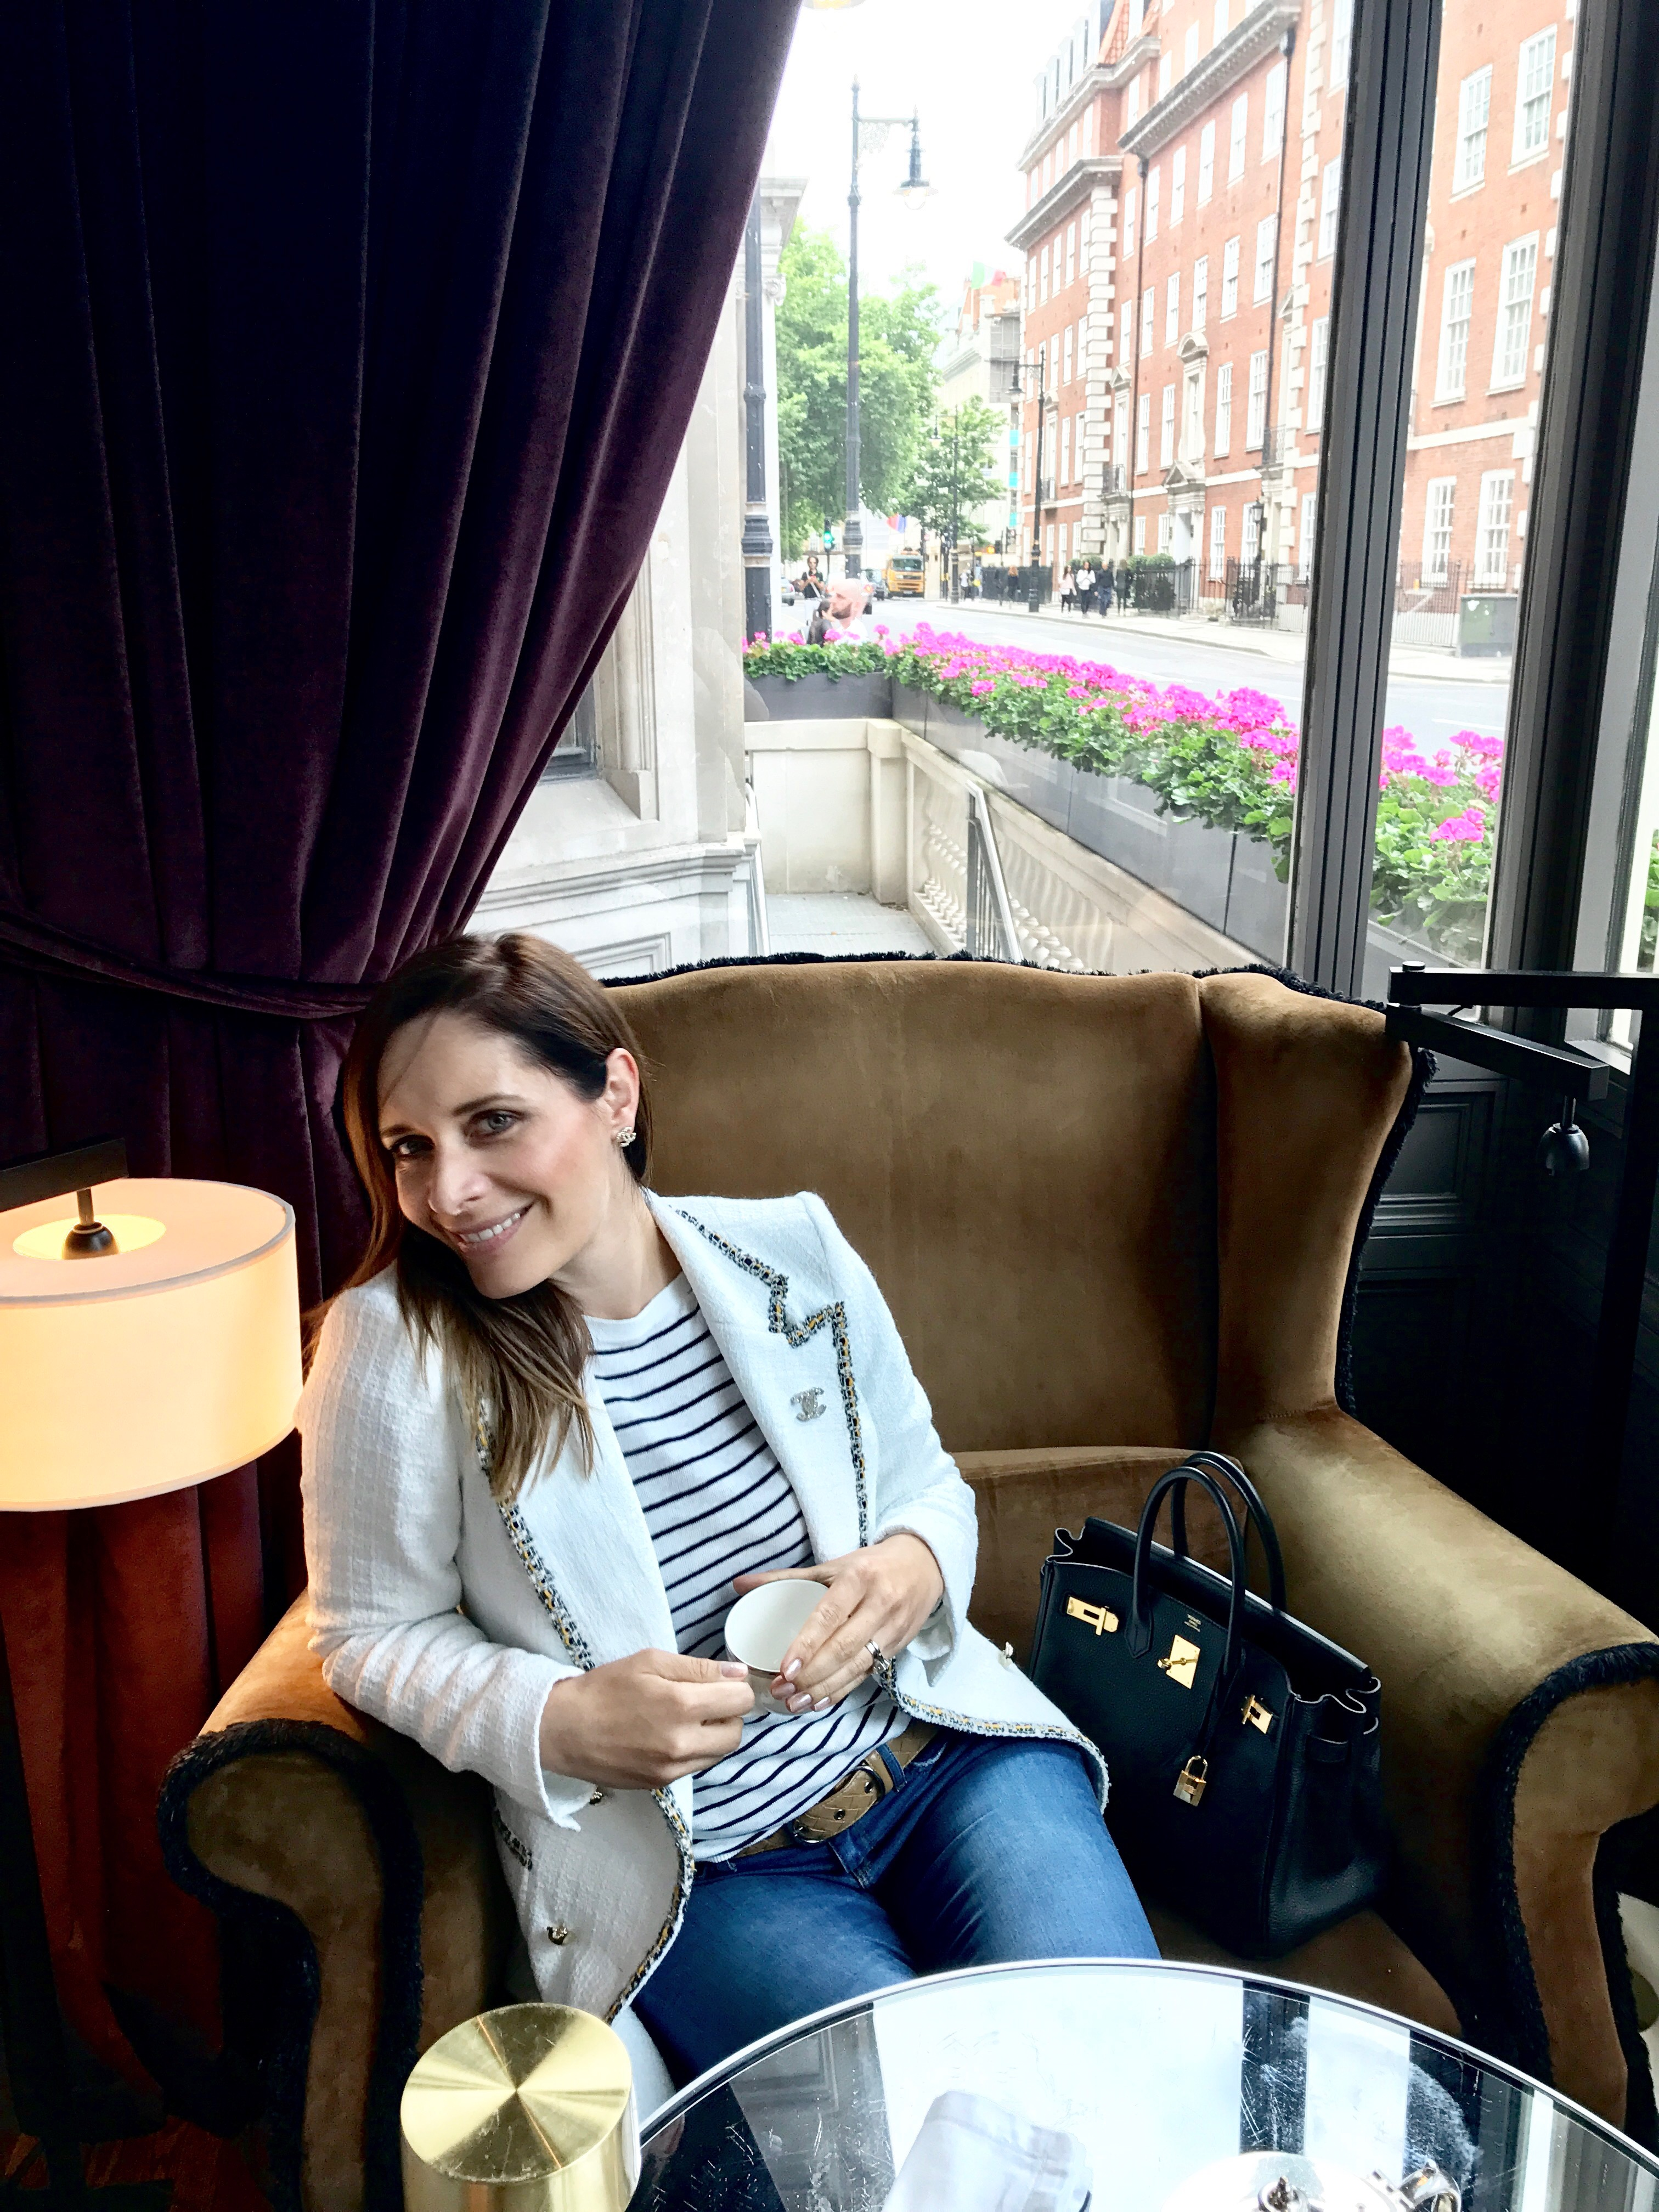 Petra from Chic Journal having tea at Coburg Bar Connaught hotel